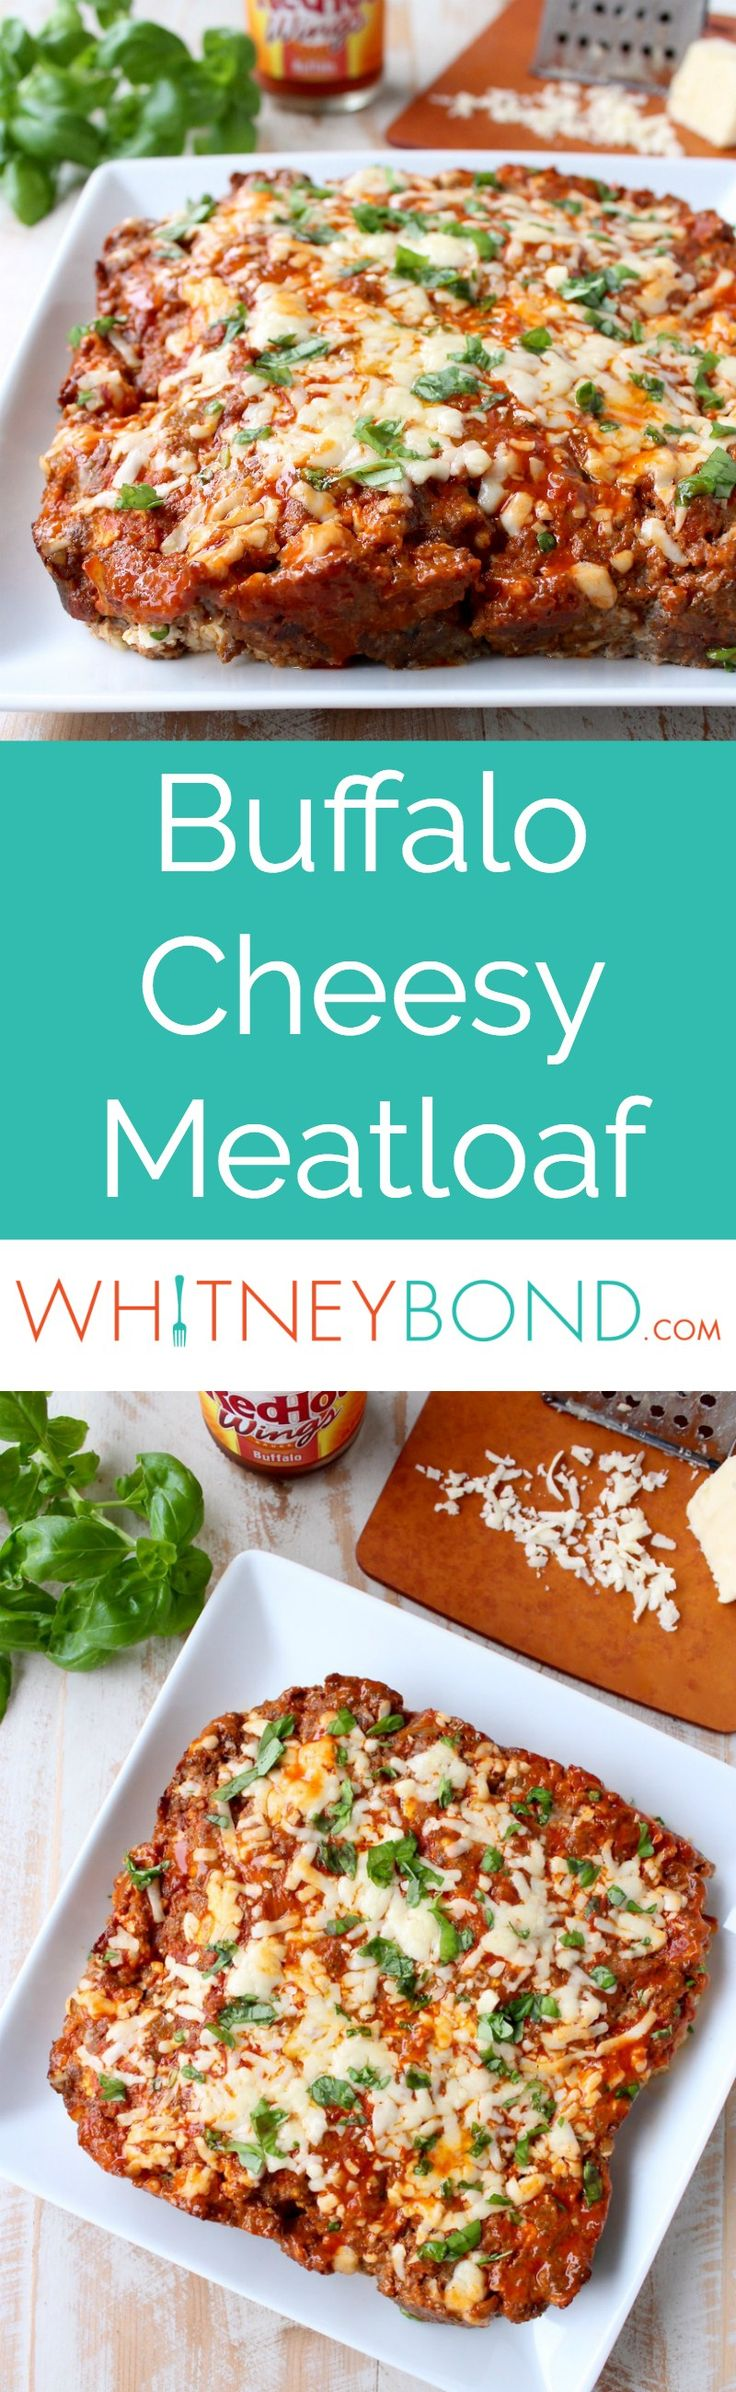 Buffalo sauce, ground beef, pork sausage and two cheeses are combined in this delicious, easy Buffalo Cheesy Meatloaf recipe! Served on the @worldmarket 	  White Square Coupe Dinner Plate #WorldMarketTribe